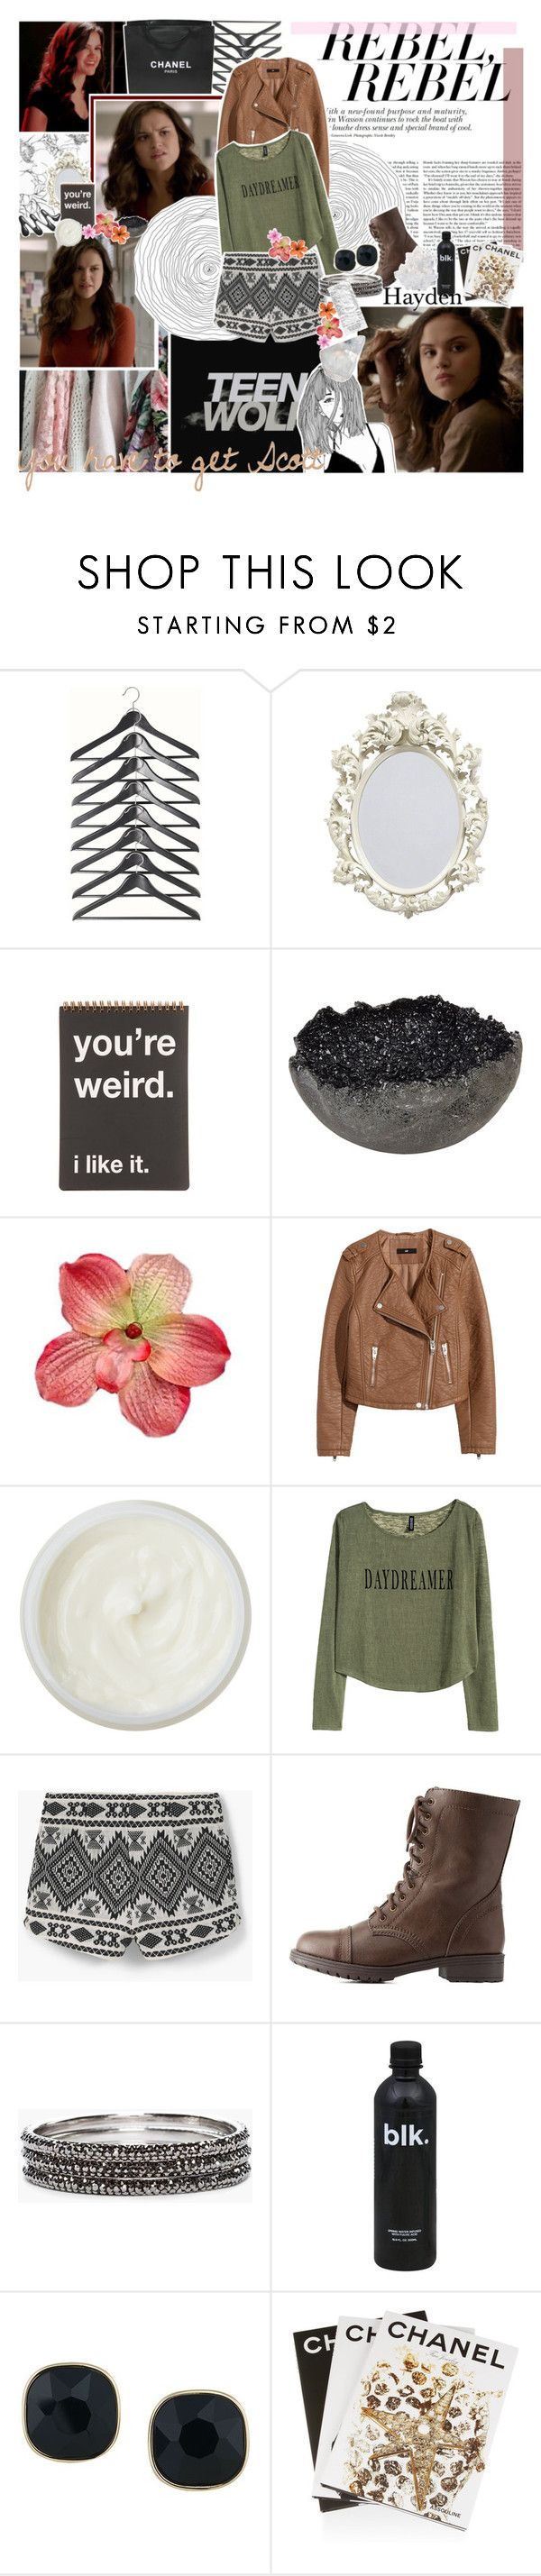 """Hayden Romero 